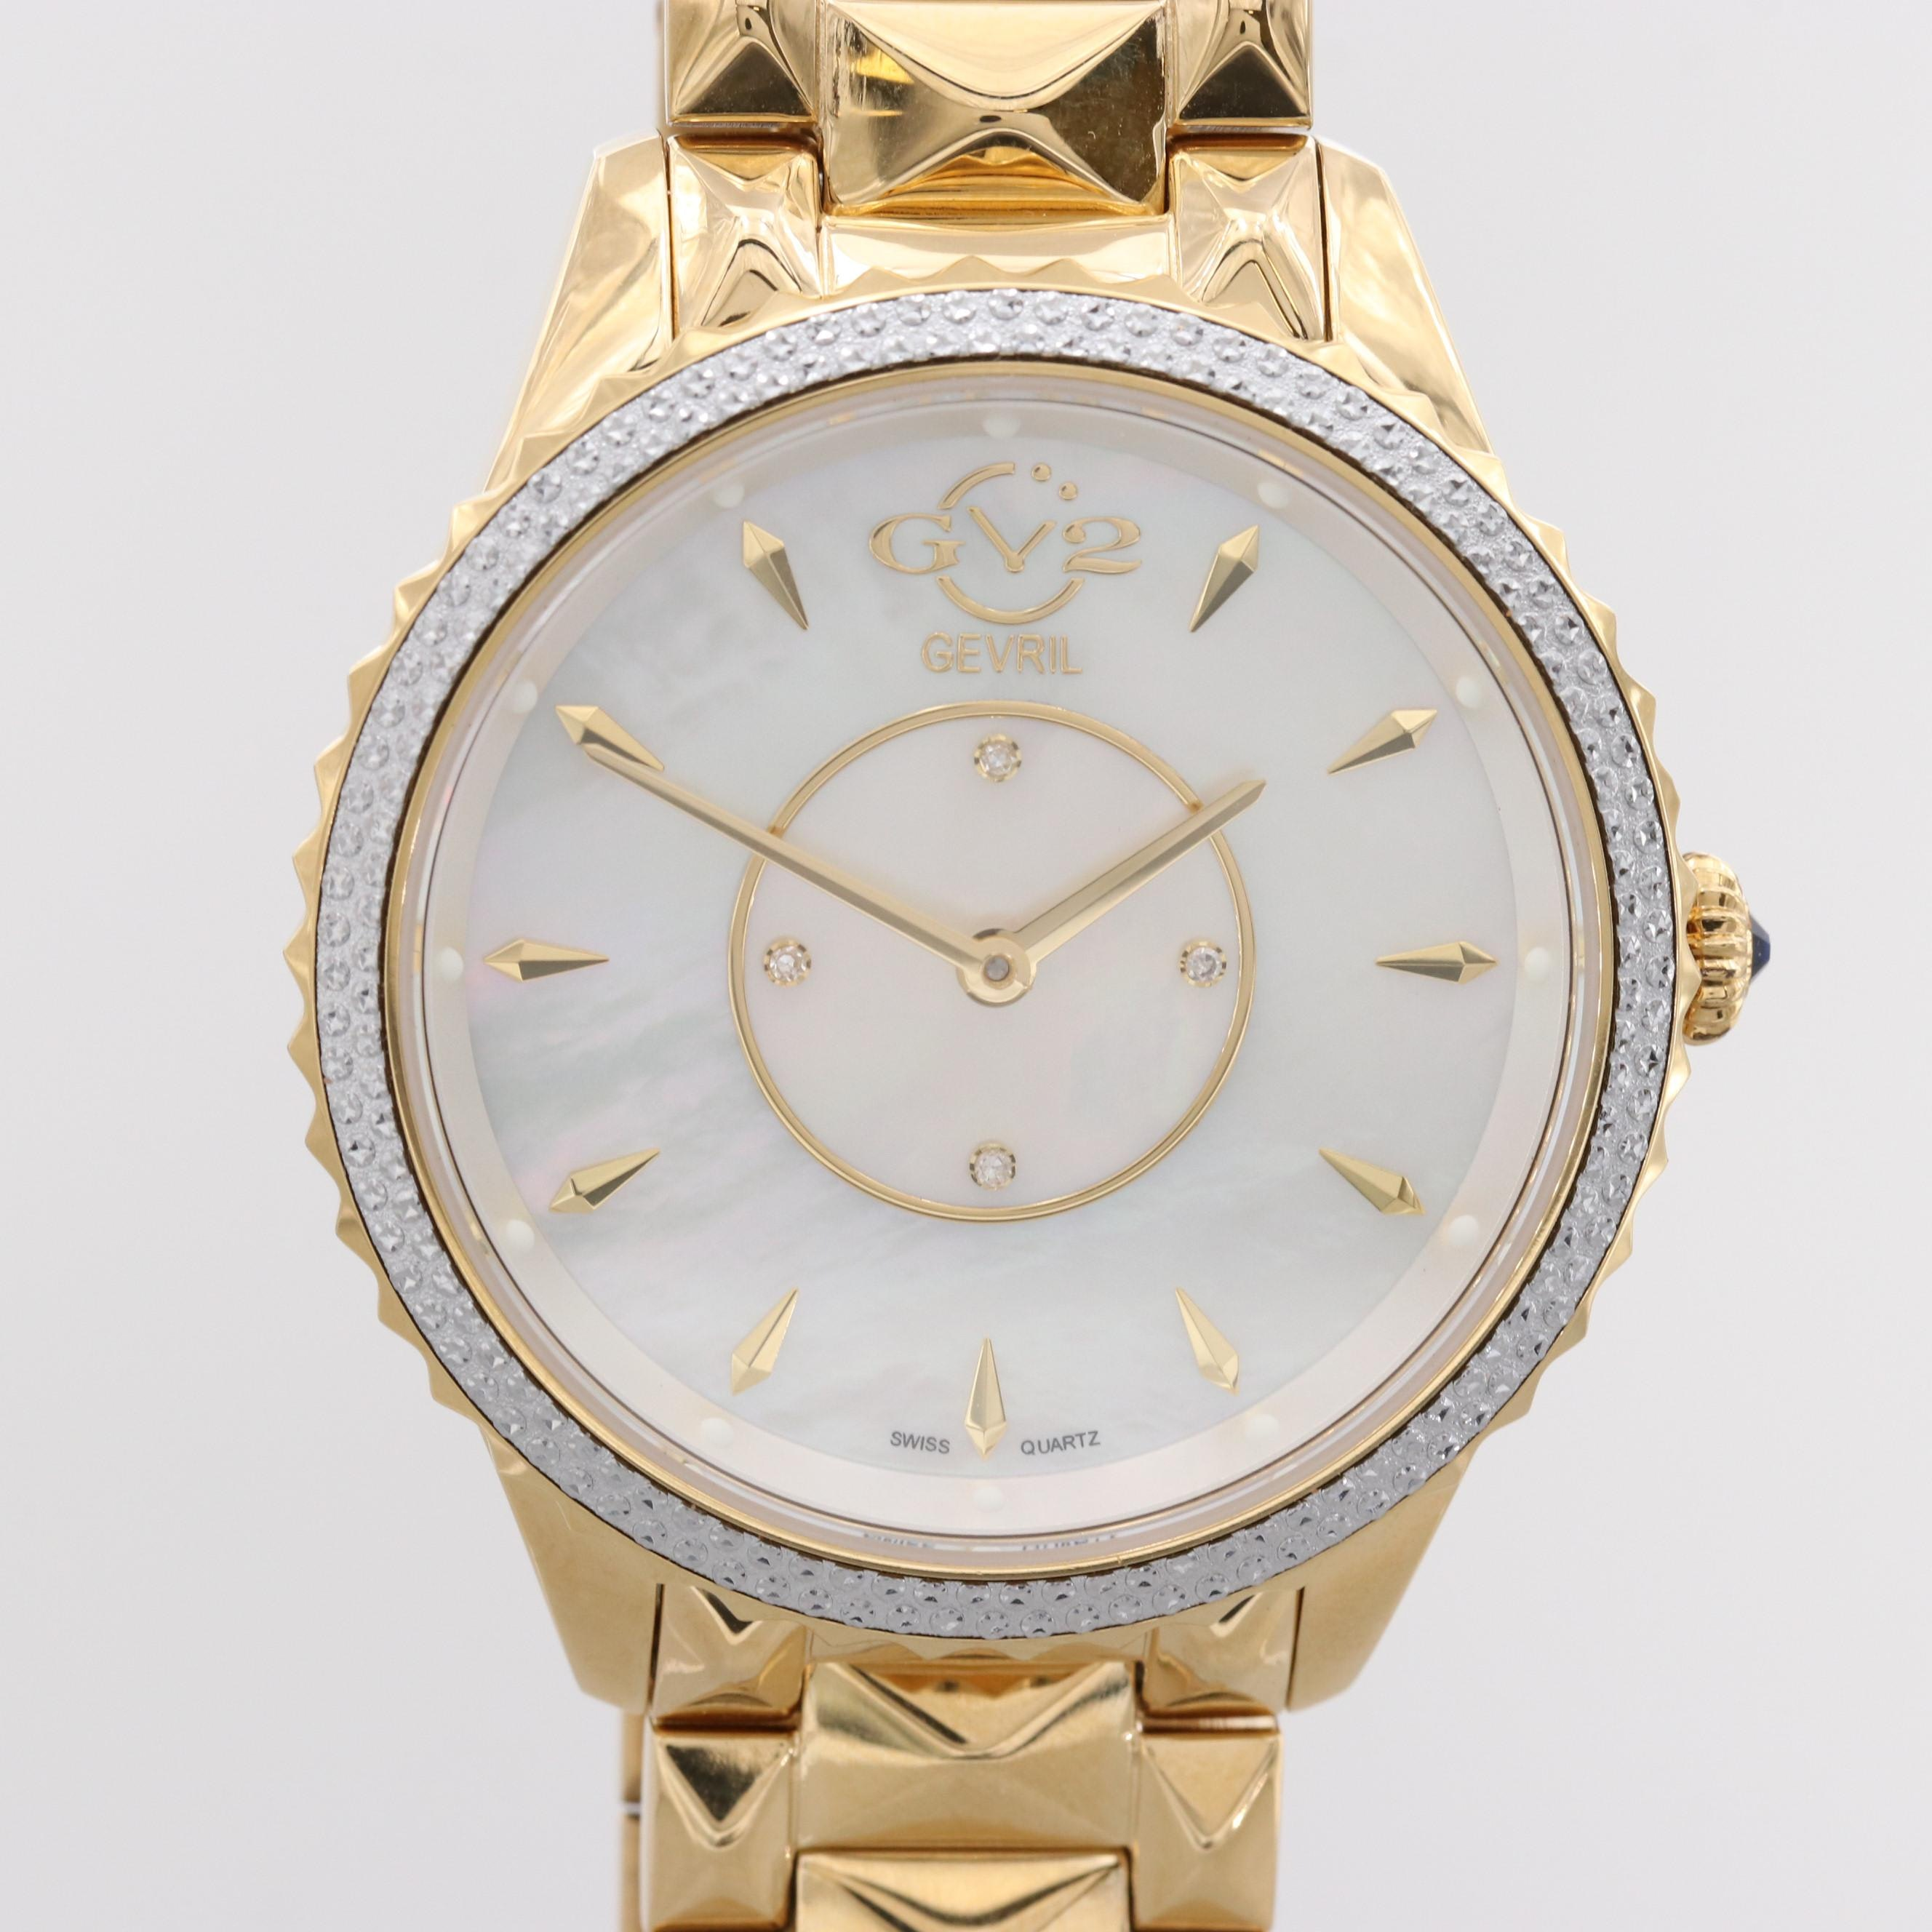 Gevril GV2 Siena Gold Tone Quartz Wristwatch With Mother of Pearl and Diamonds